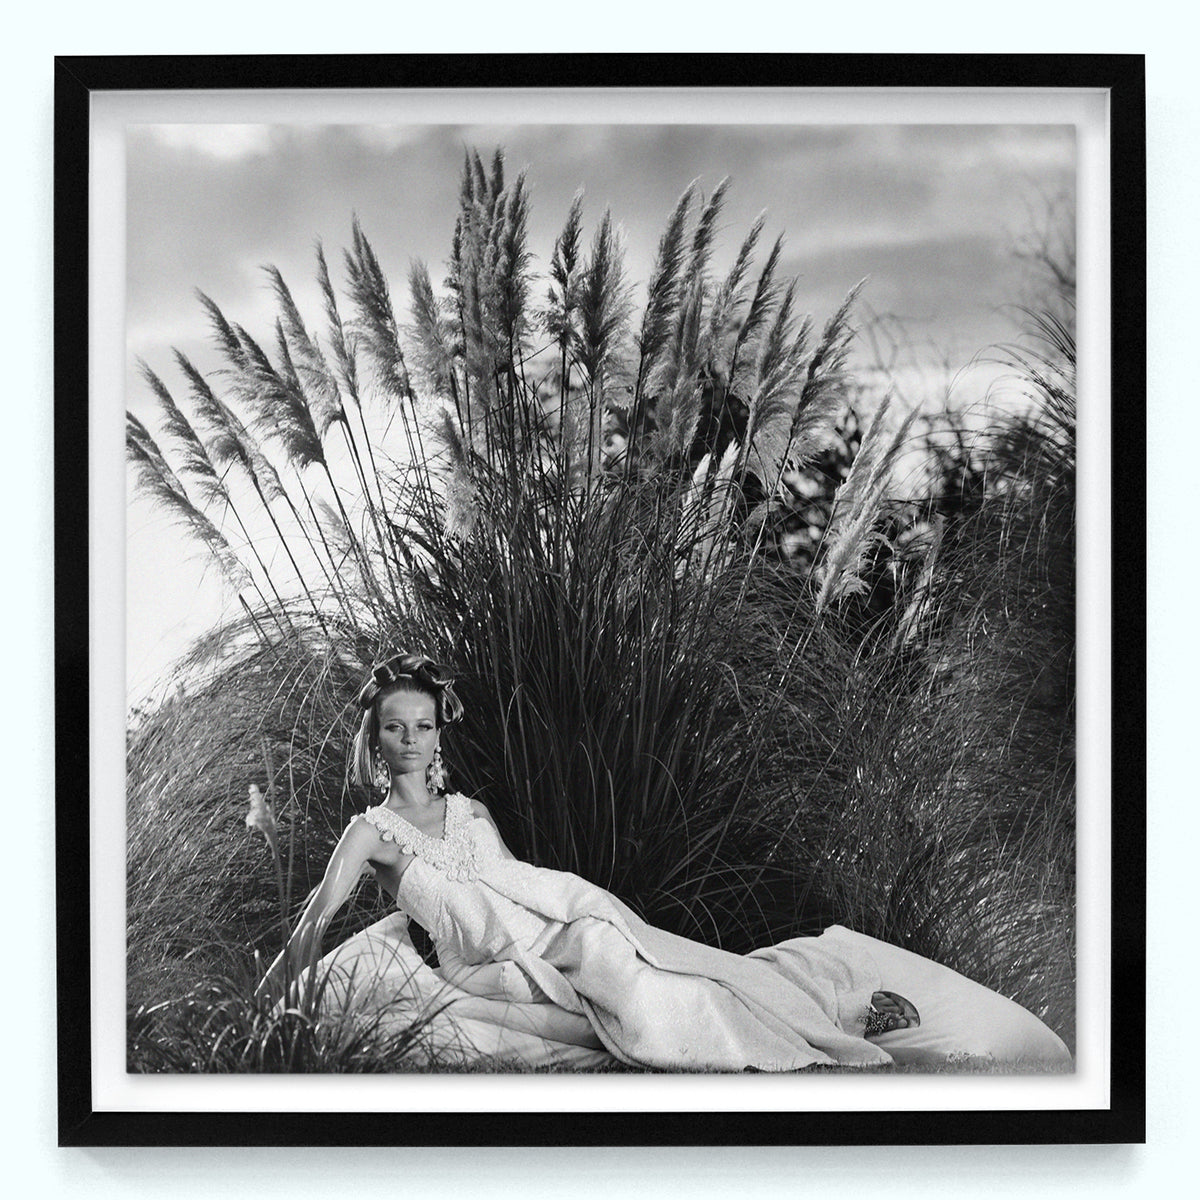 Lady in Rushes